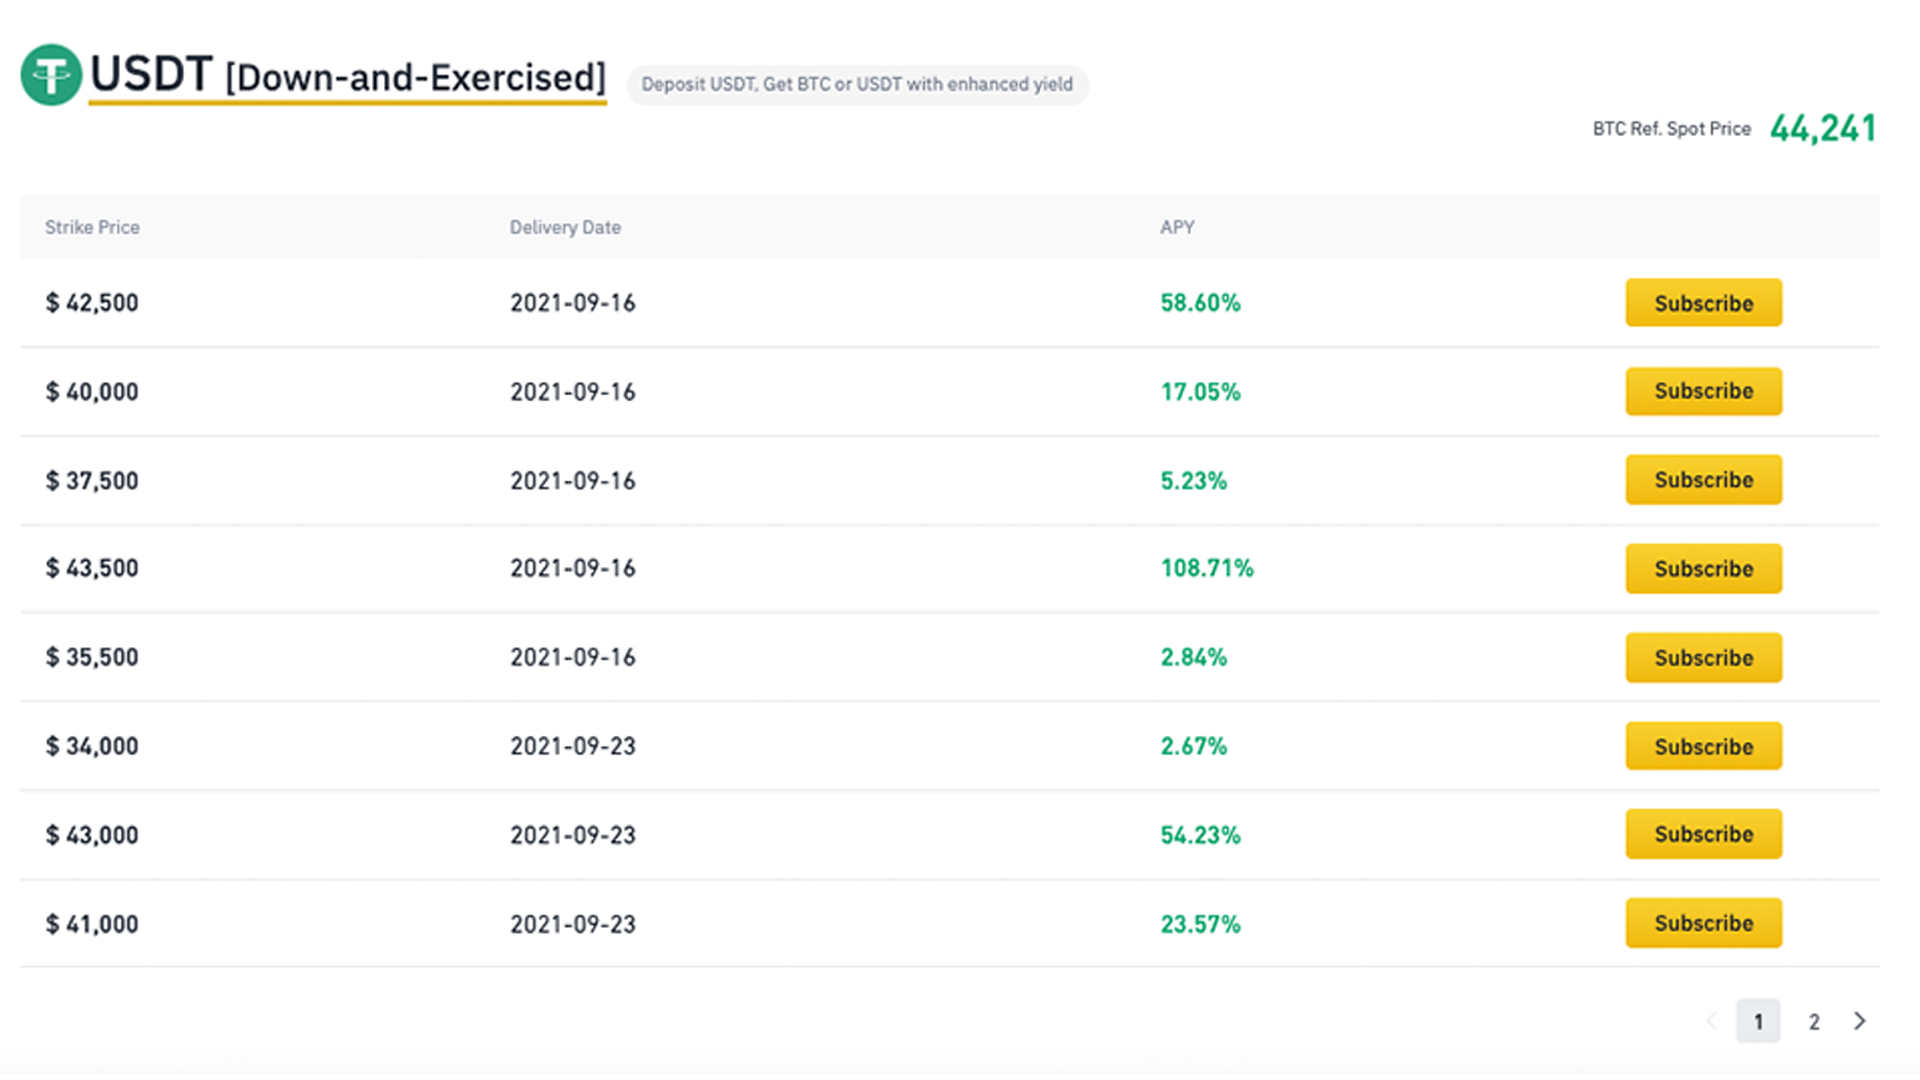 Binance Dual Investment down-and-exercised image.